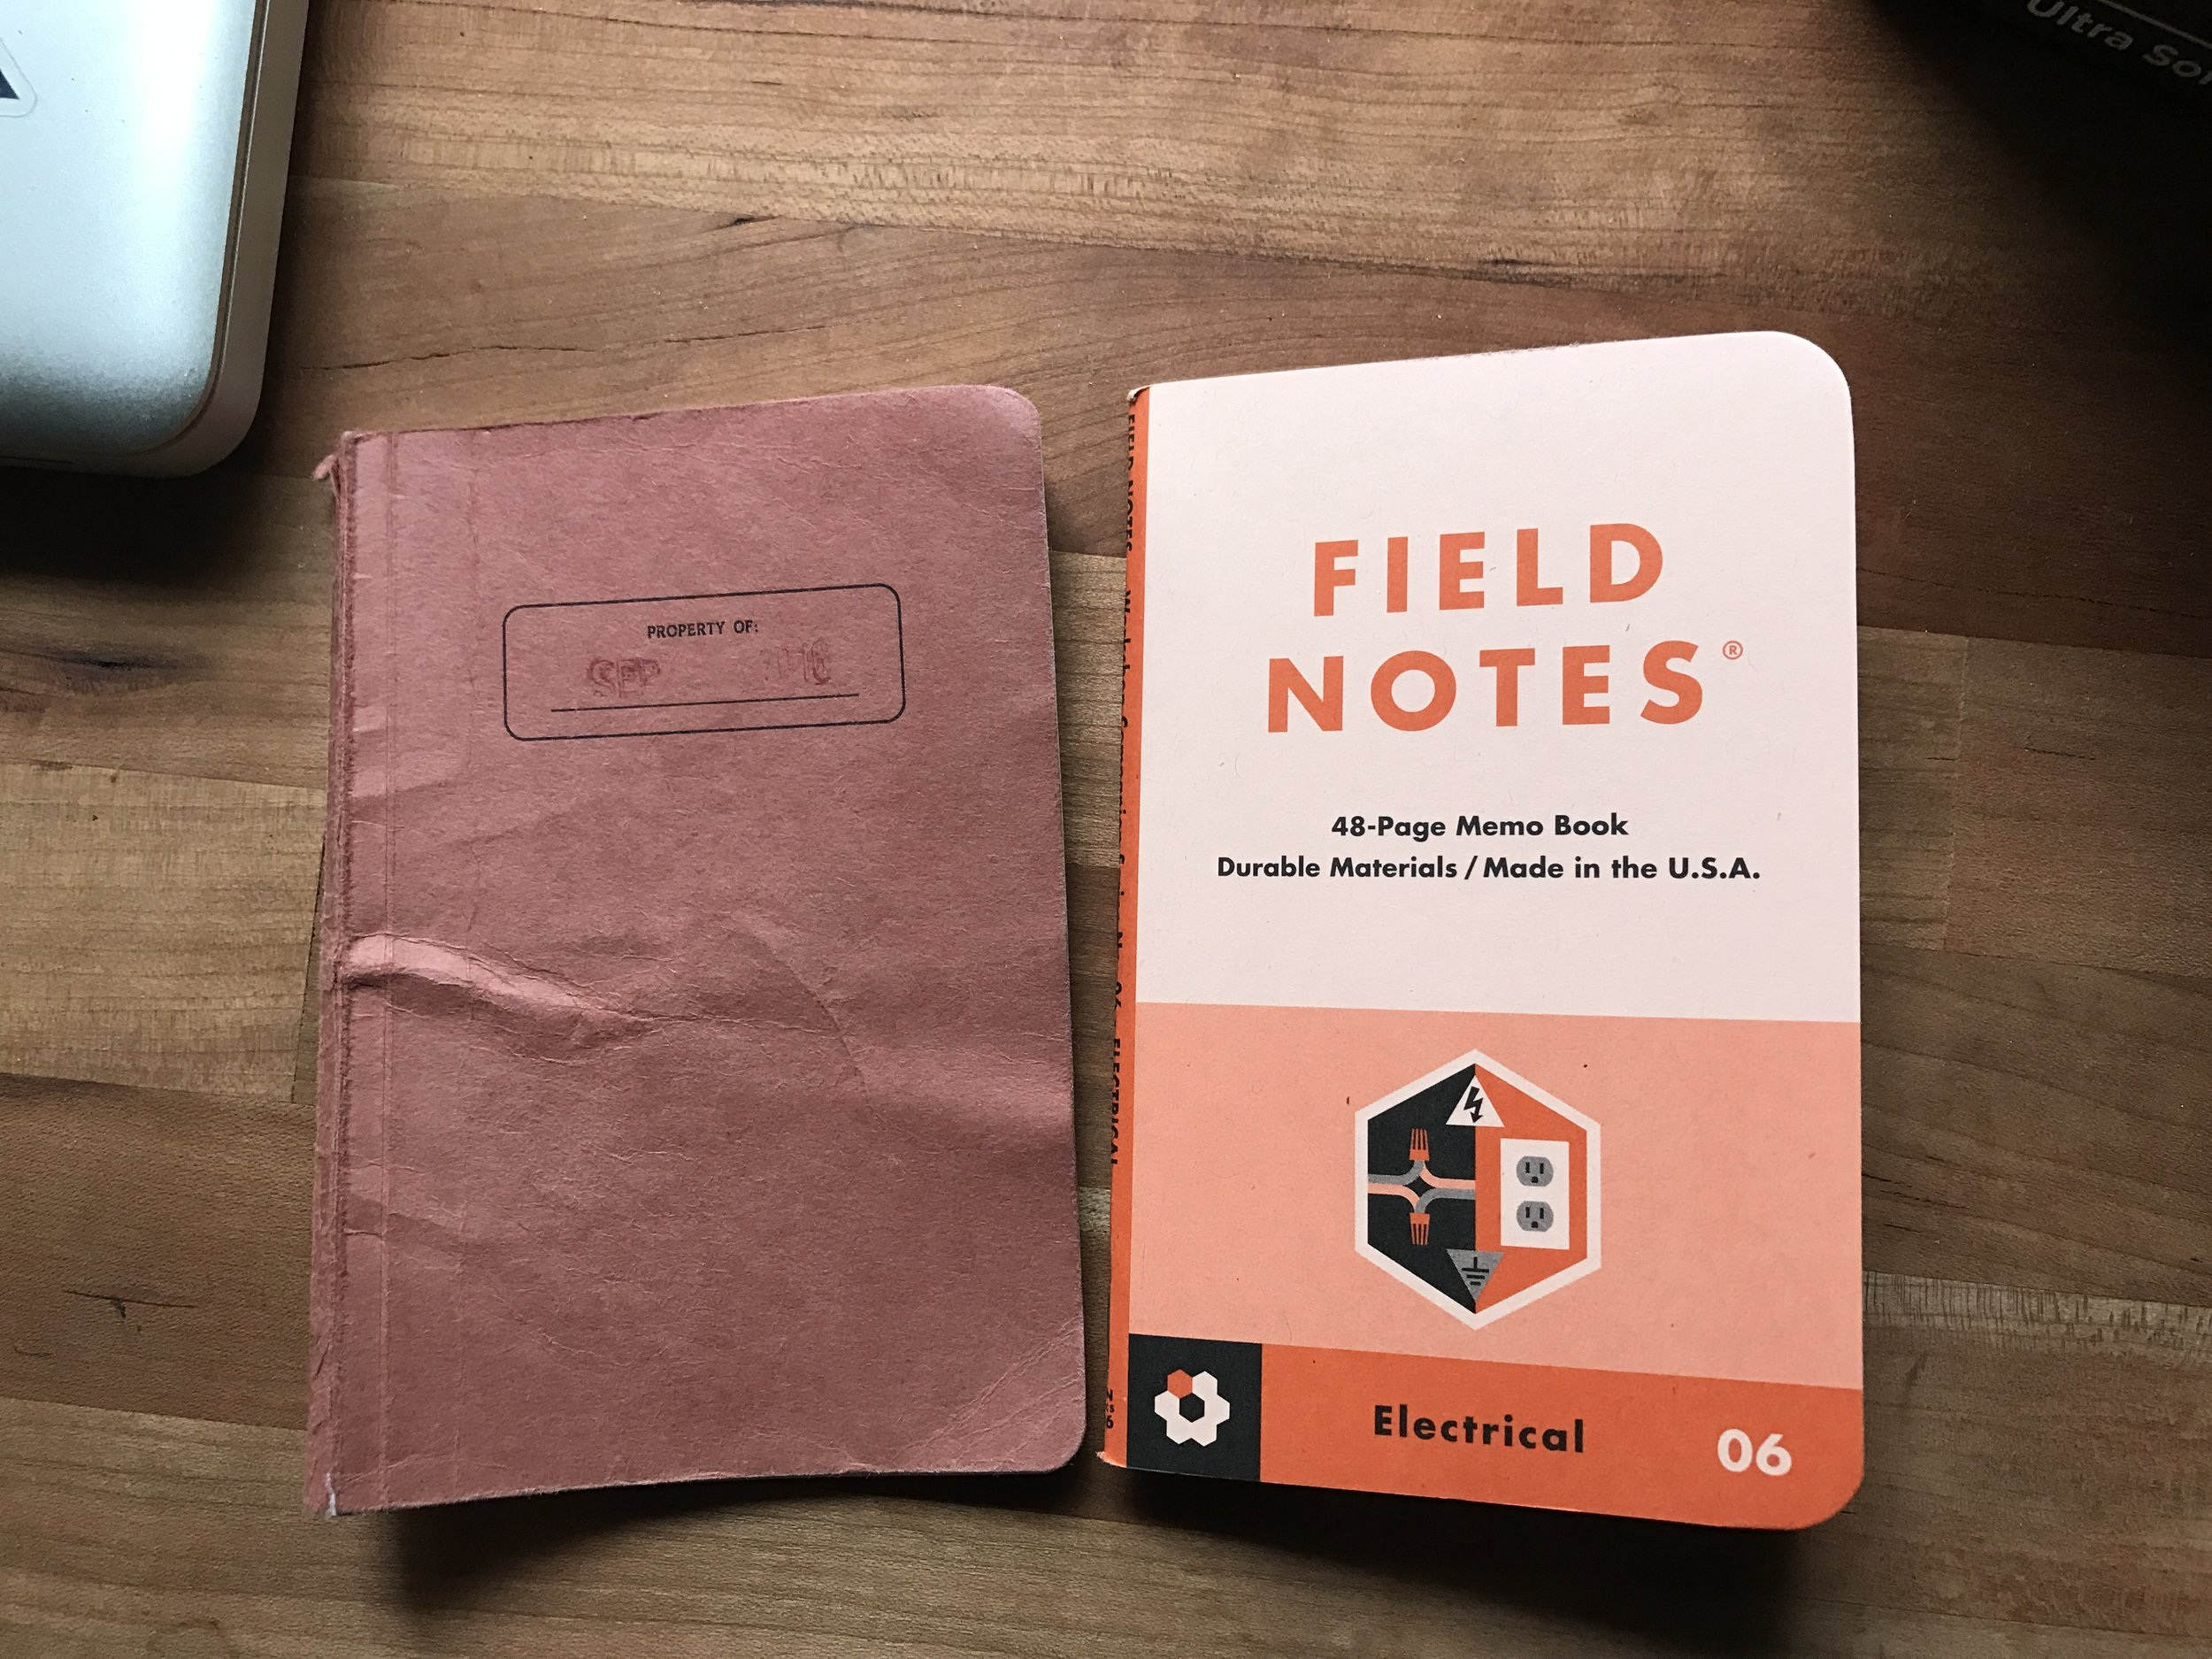 Going into fall with a nice orange EDC book.